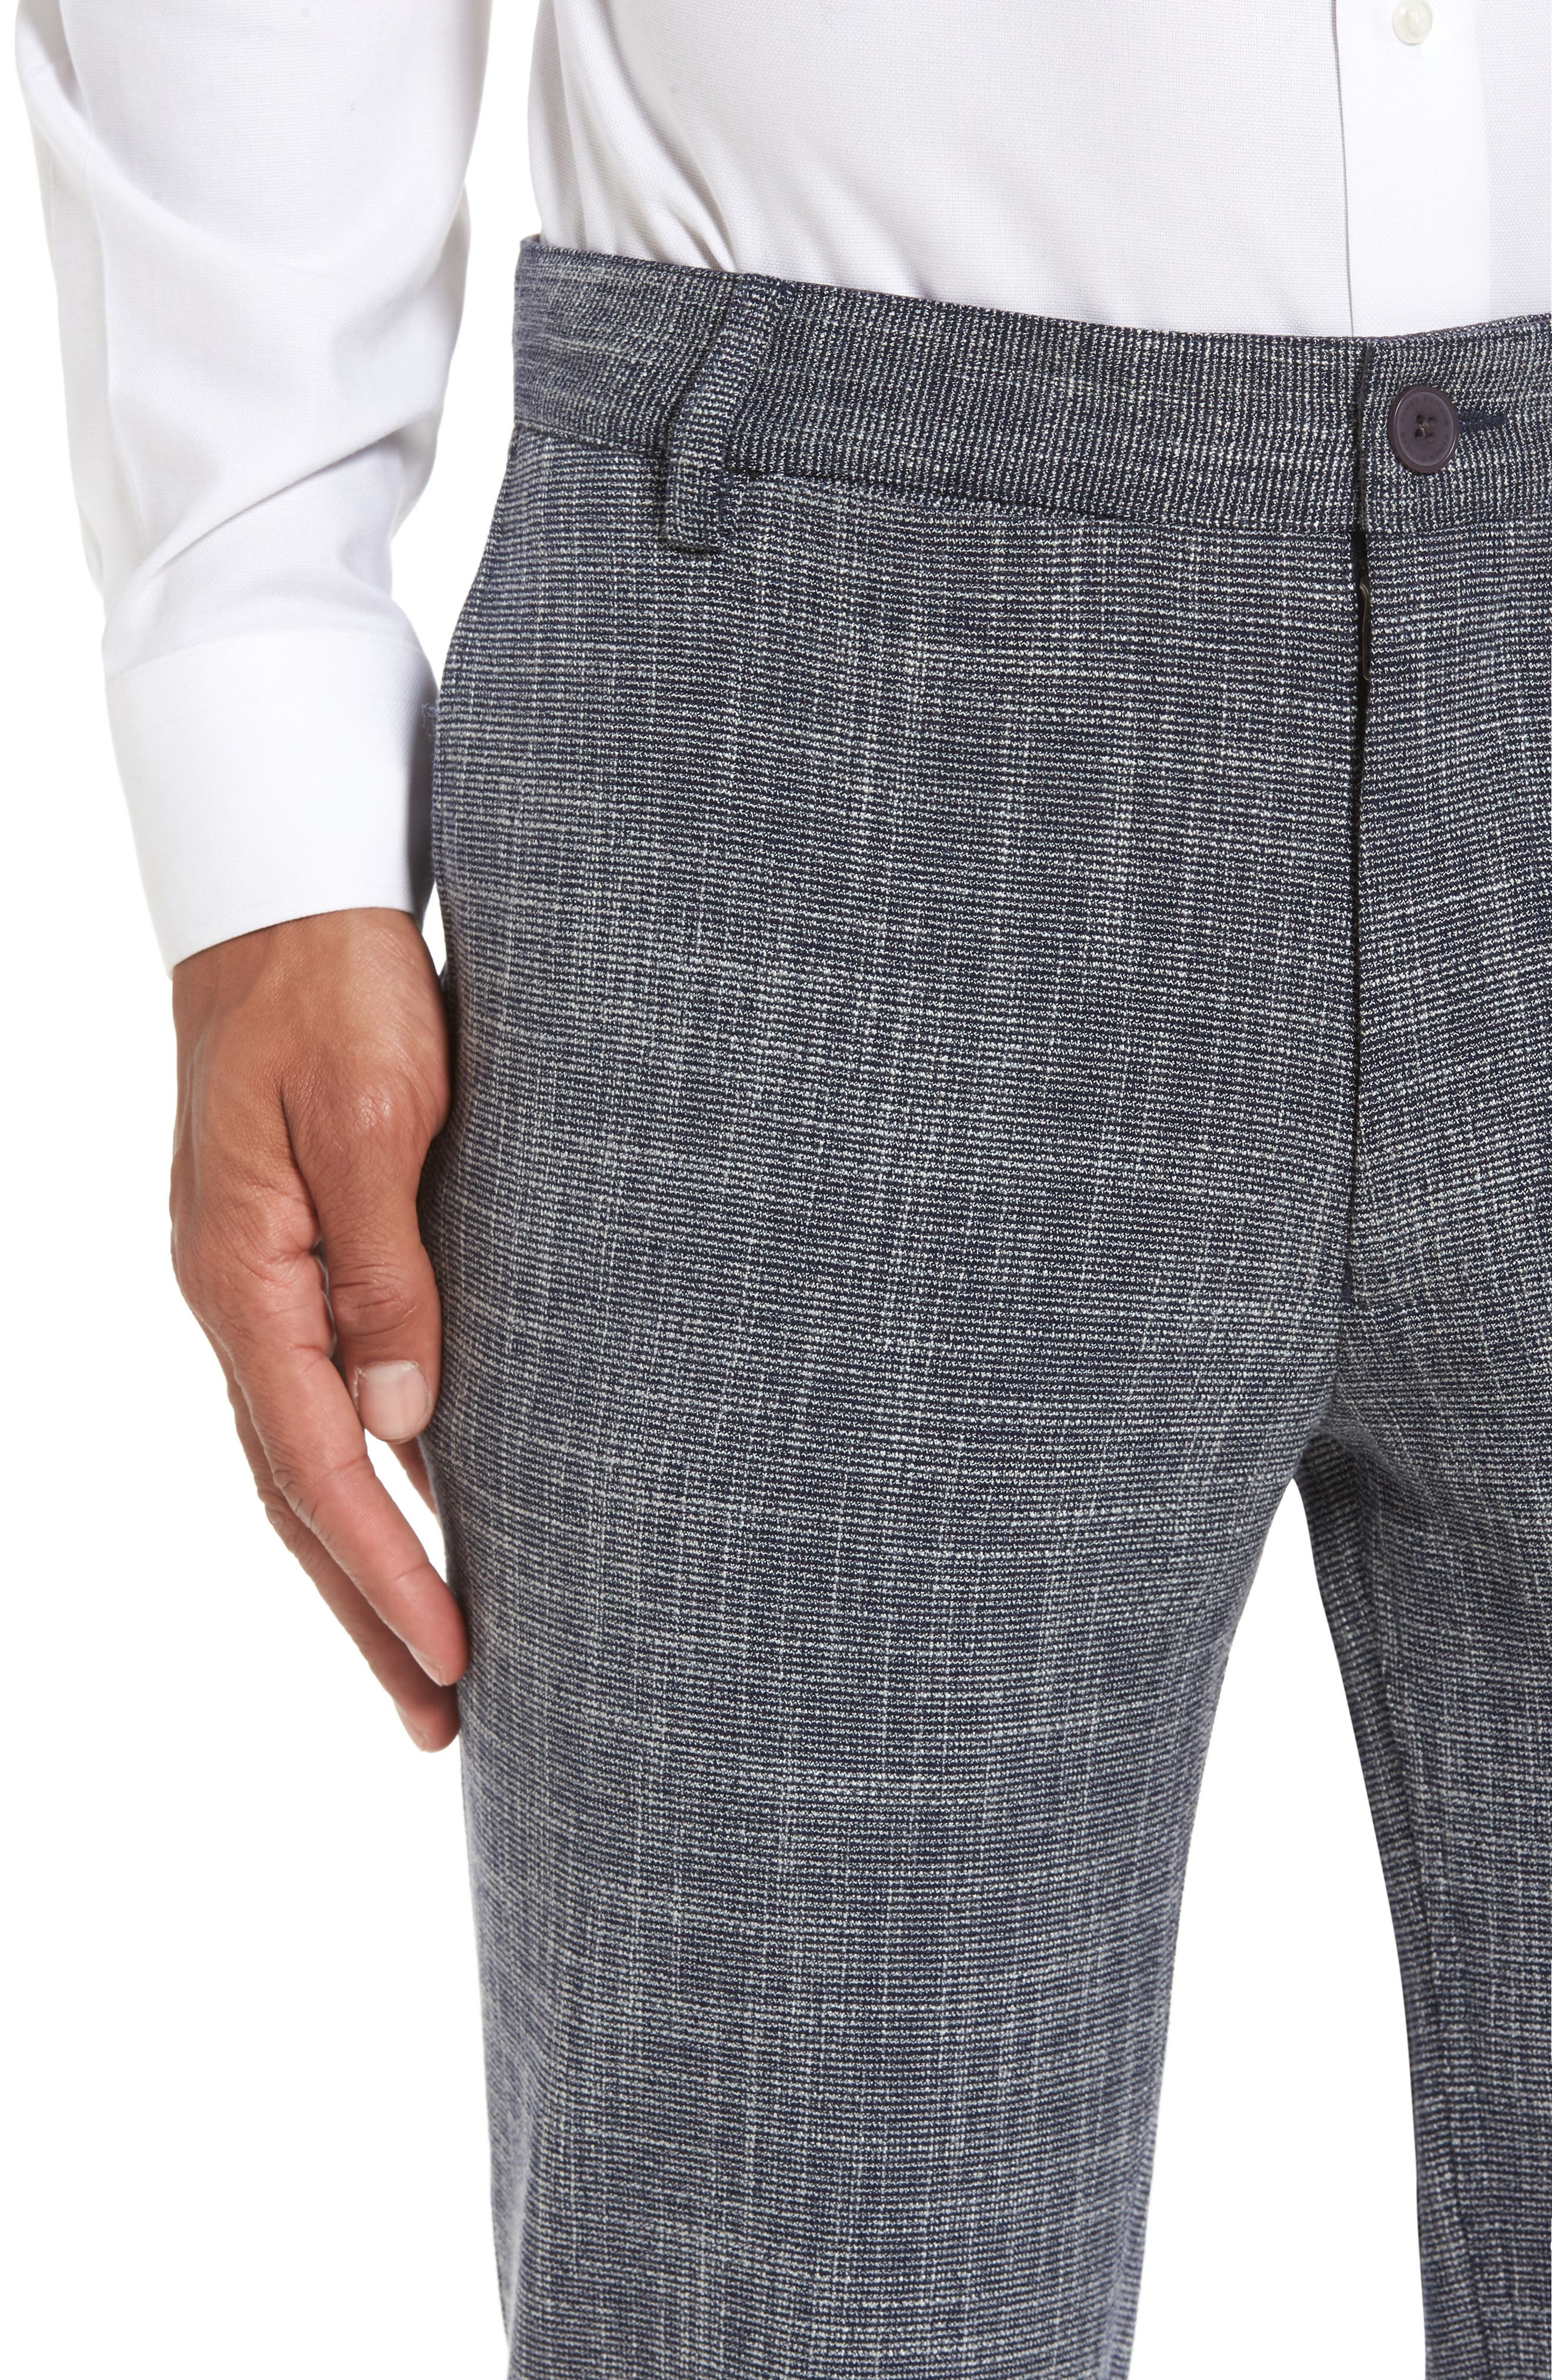 Slim Fit Cuffed Pants,                             Alternate thumbnail 4, color,                             Navy Scratch Weave